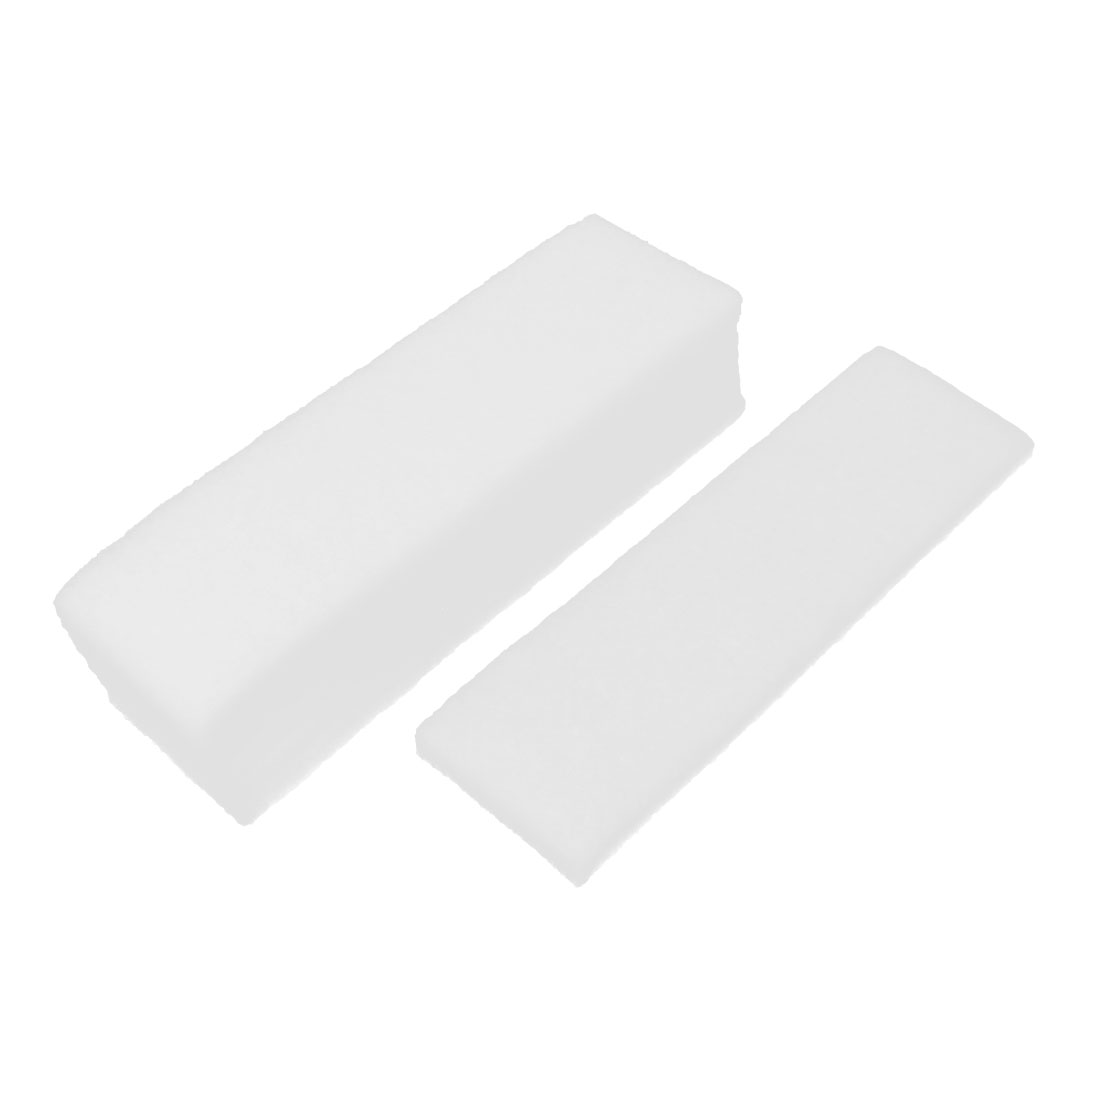 Aquarium Fish Tank Biological Filter Foam Block Sponge Pad 6 Pcs White